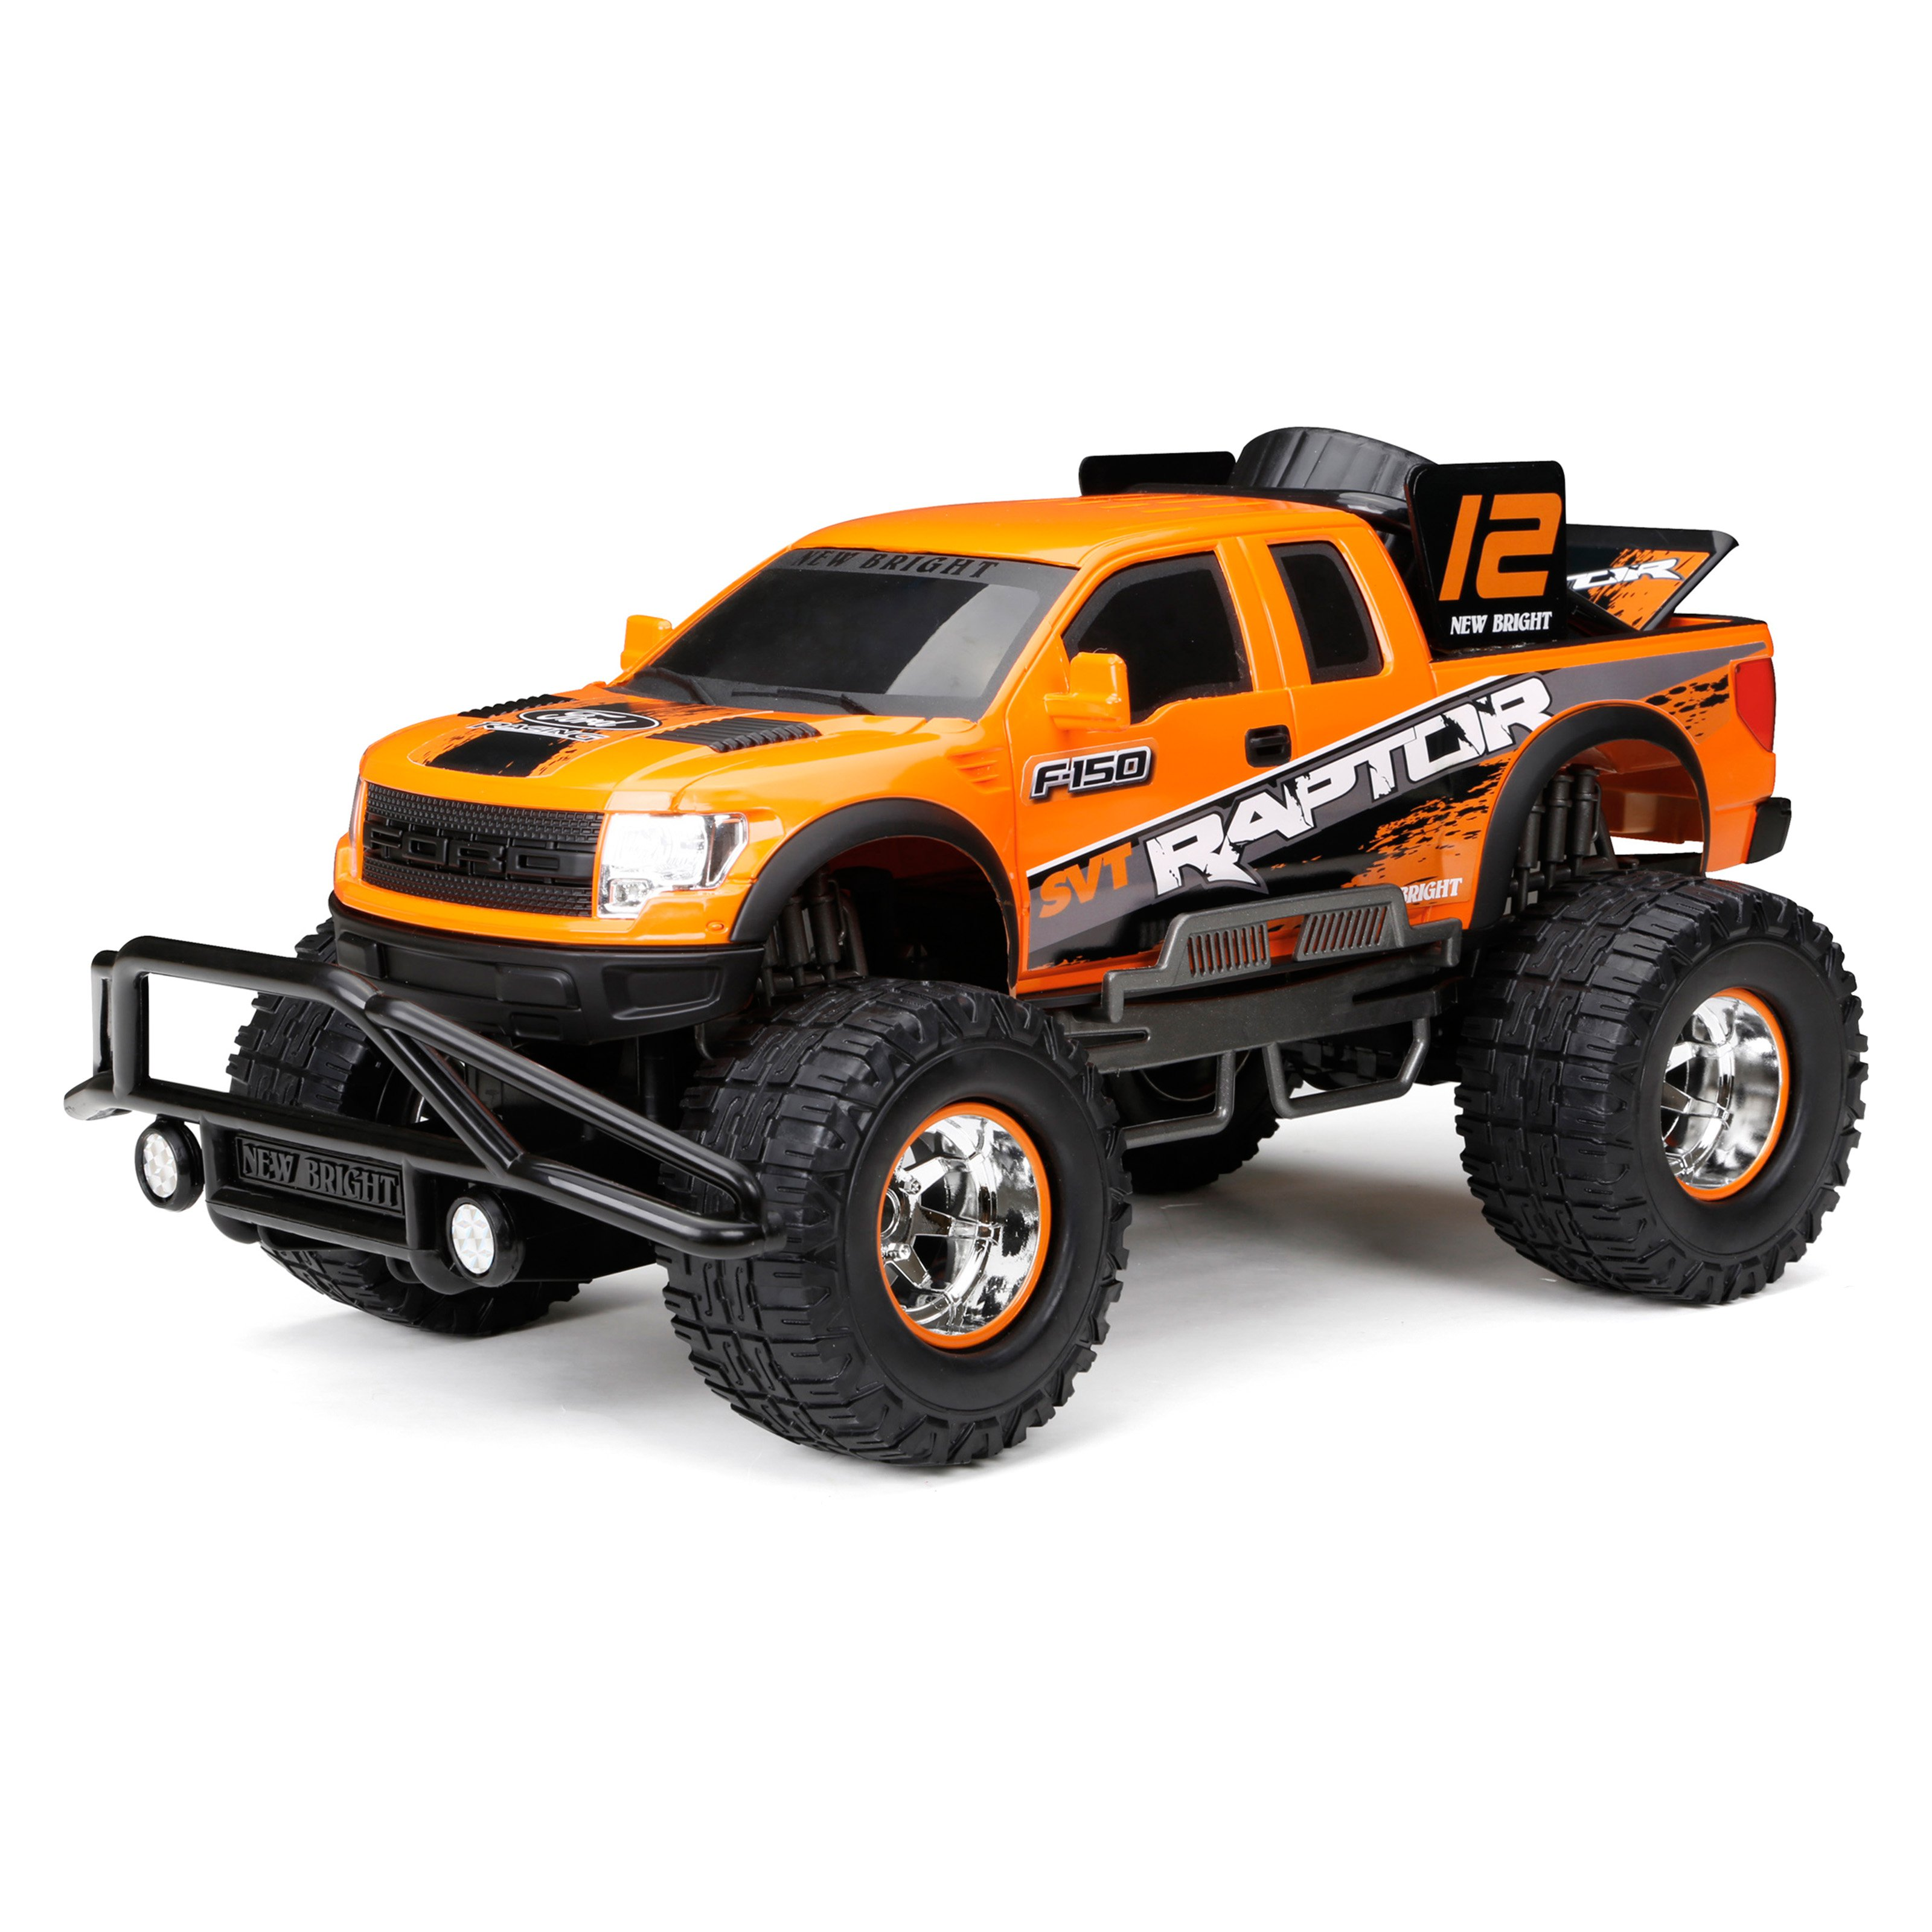 New Bright 110 Baja Extreme Ford F-150 Raptor Radio Controlled Toy - Walmart.com  sc 1 st  Walmart : ford raptor remote control car - markmcfarlin.com